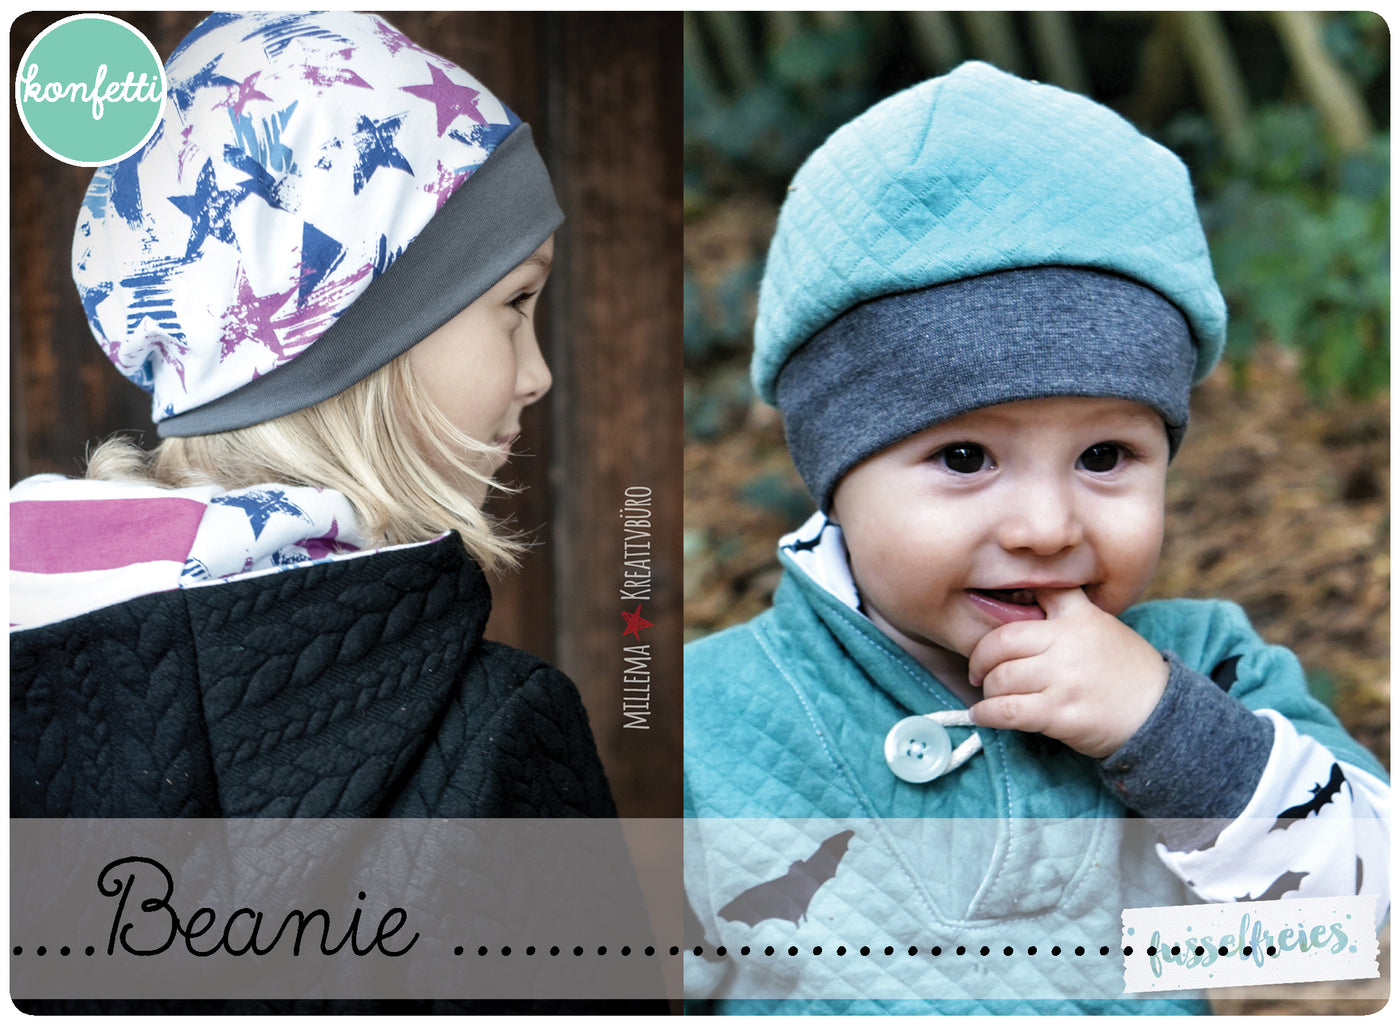 beanie-konfetti-patterns-titel